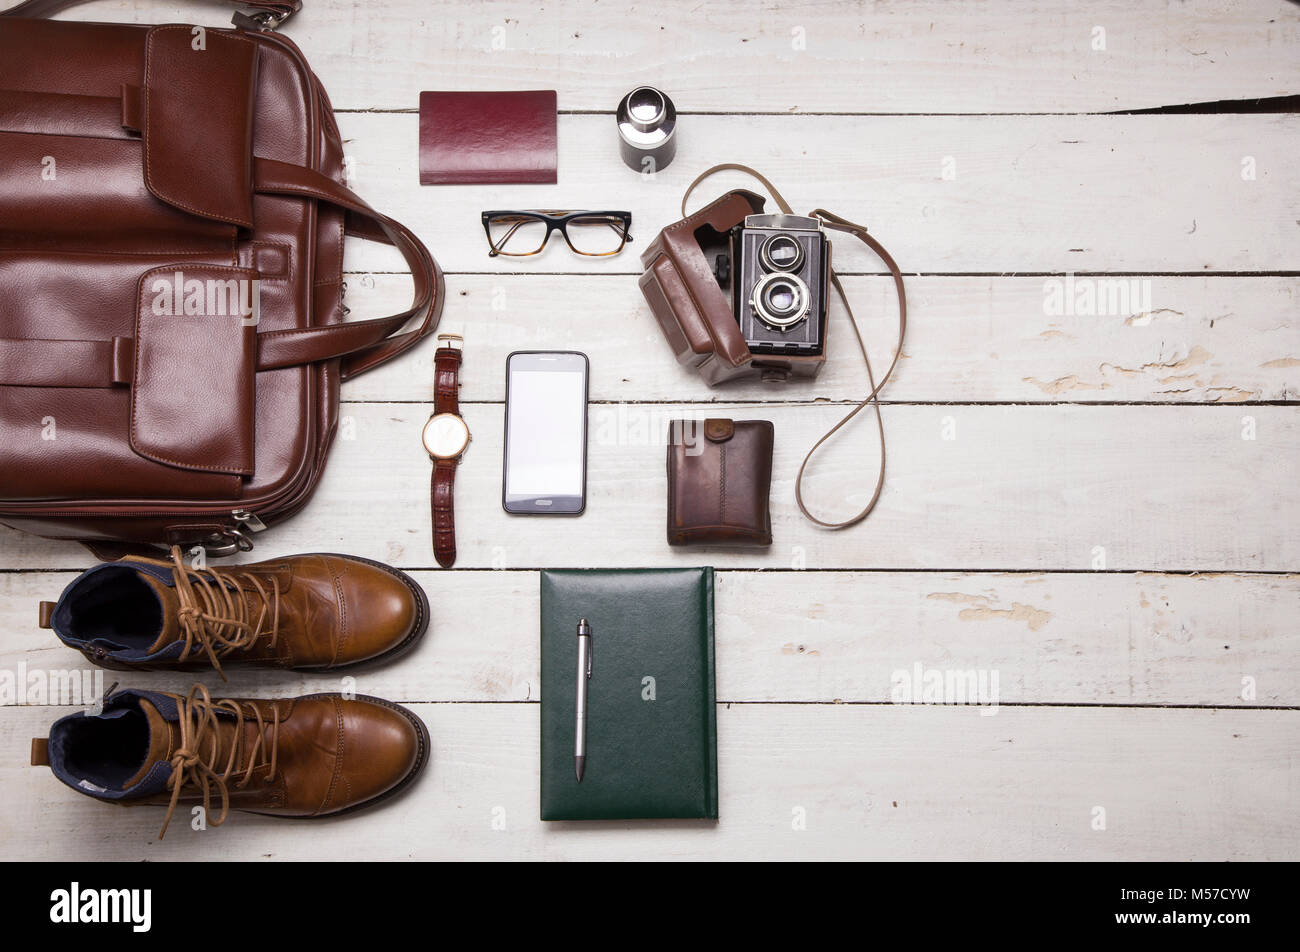 Still life with Men's casual outfits with leather accessories on brown wooden background, beauty and fashion, travel Stock Photo